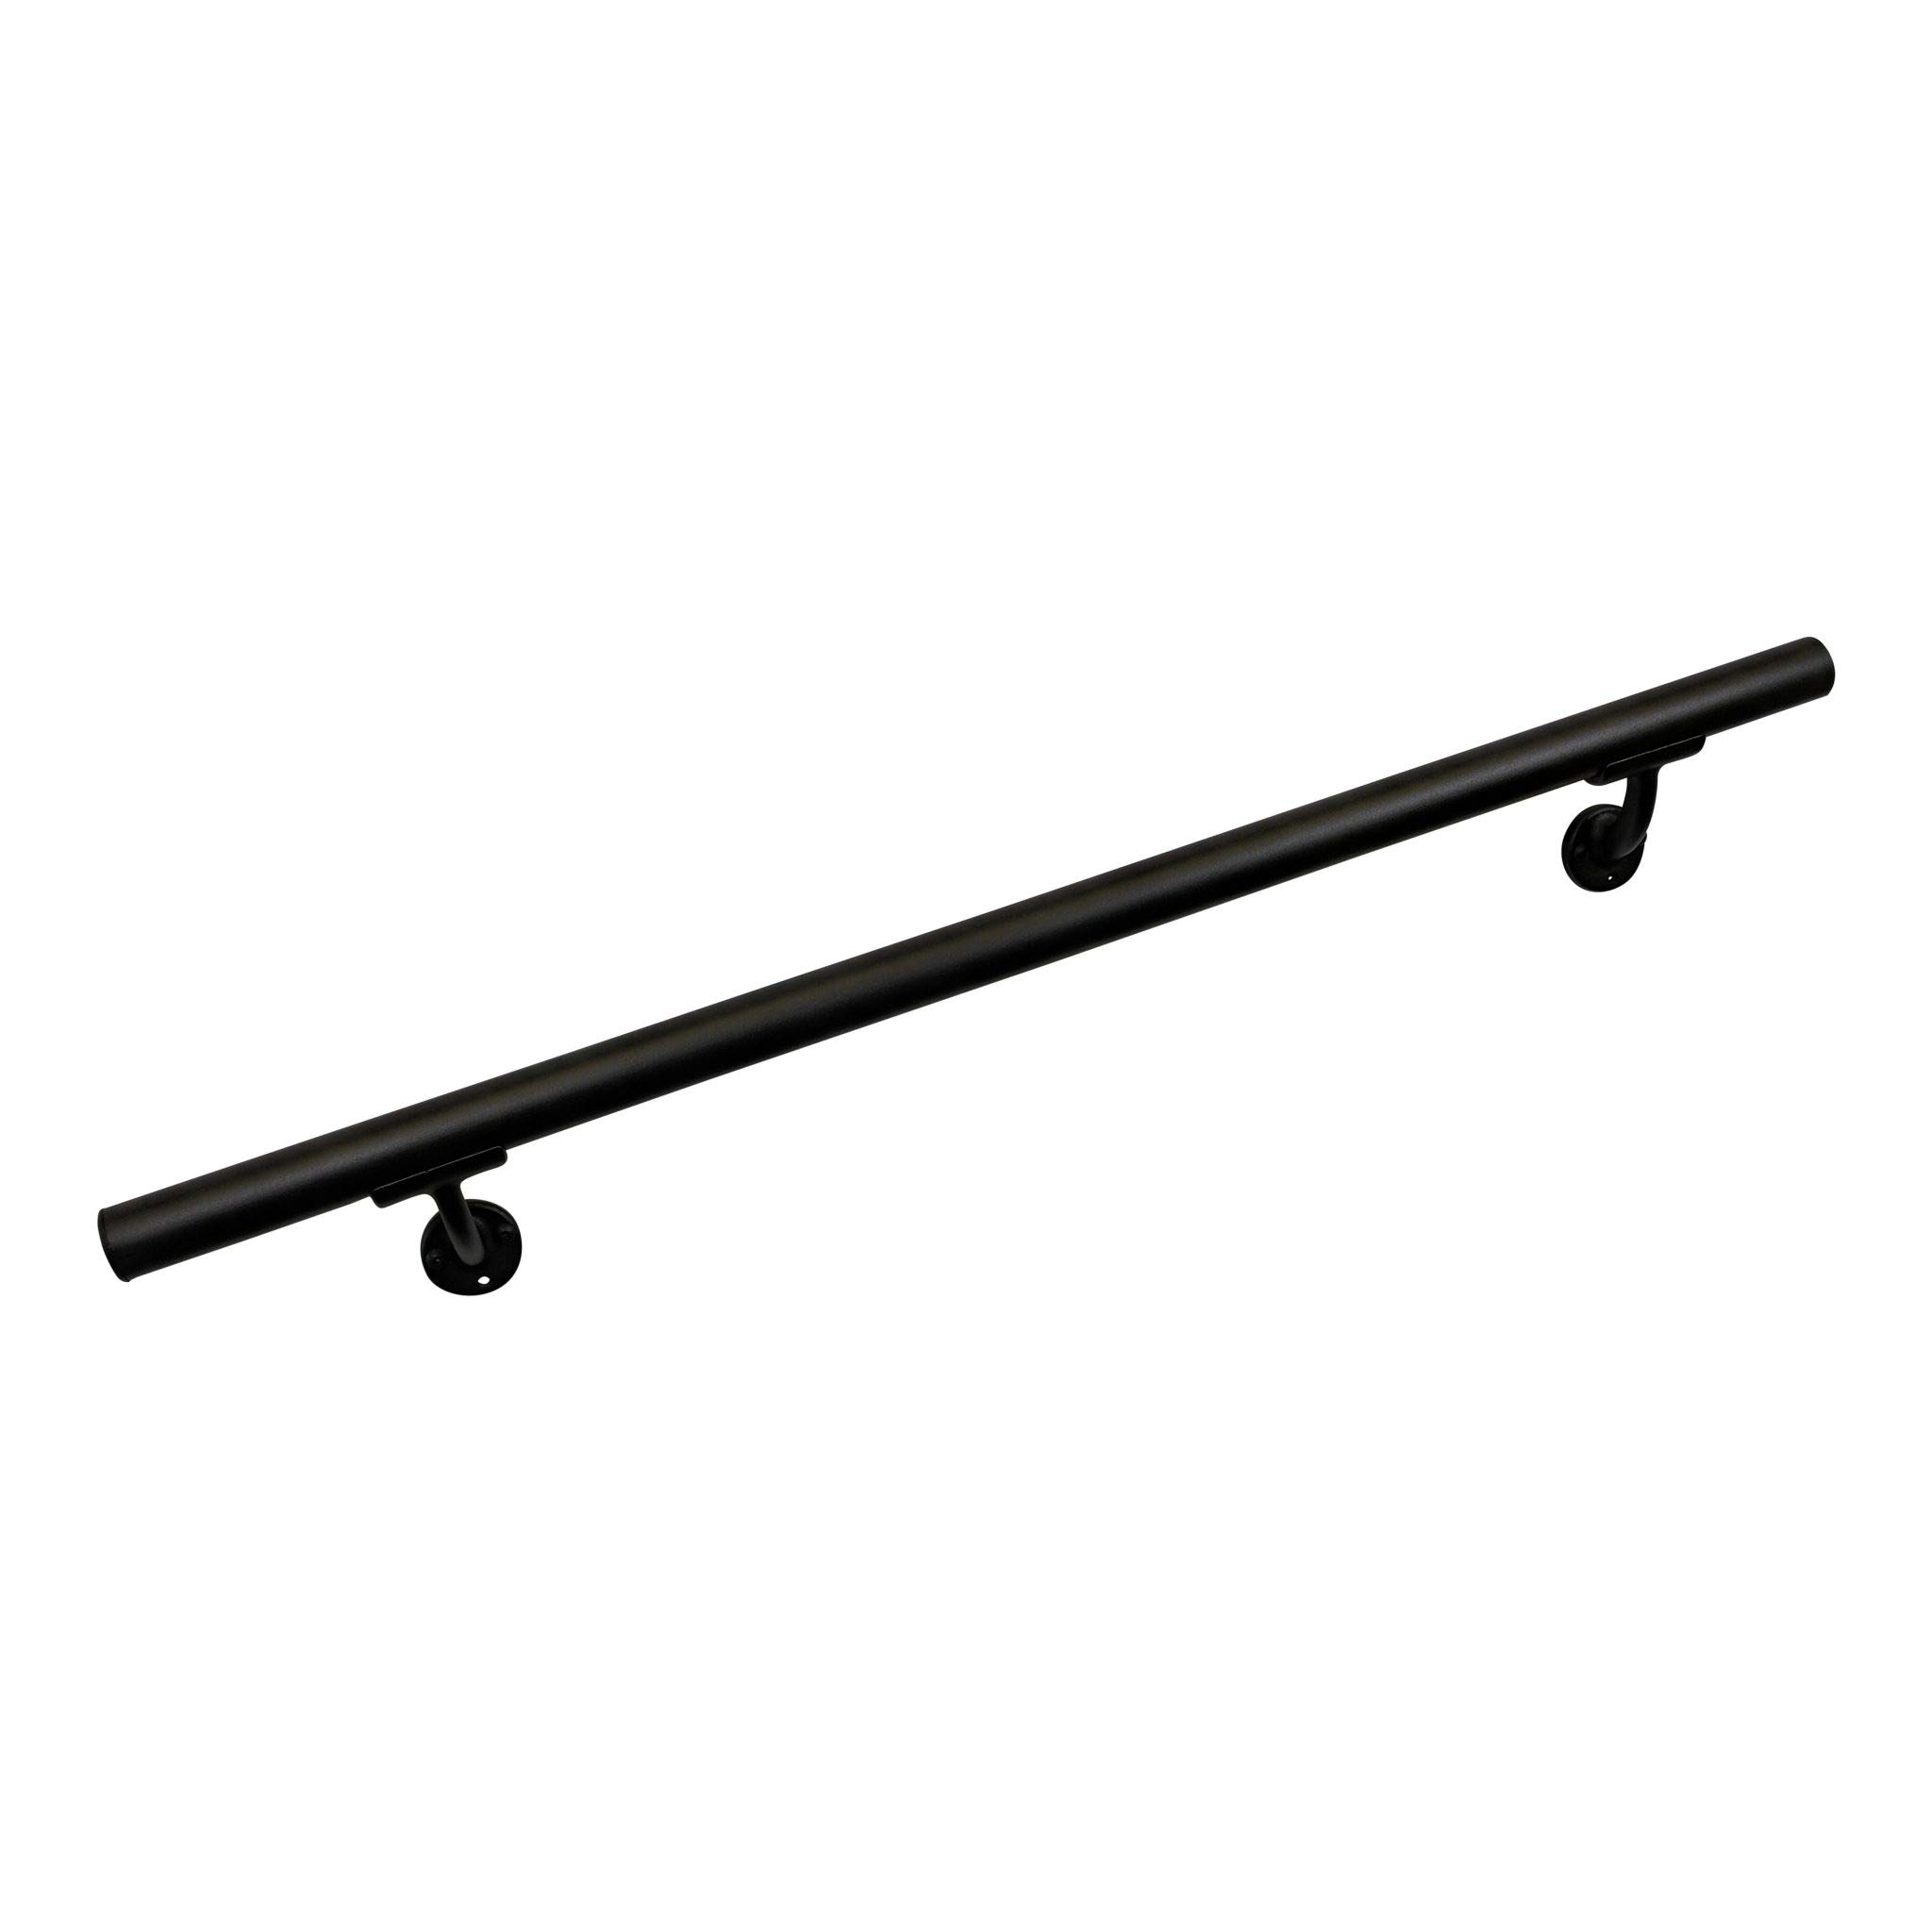 Aluminum Handrail Direct CHR 5' Handrail Section with mounts - Black Fine Texture